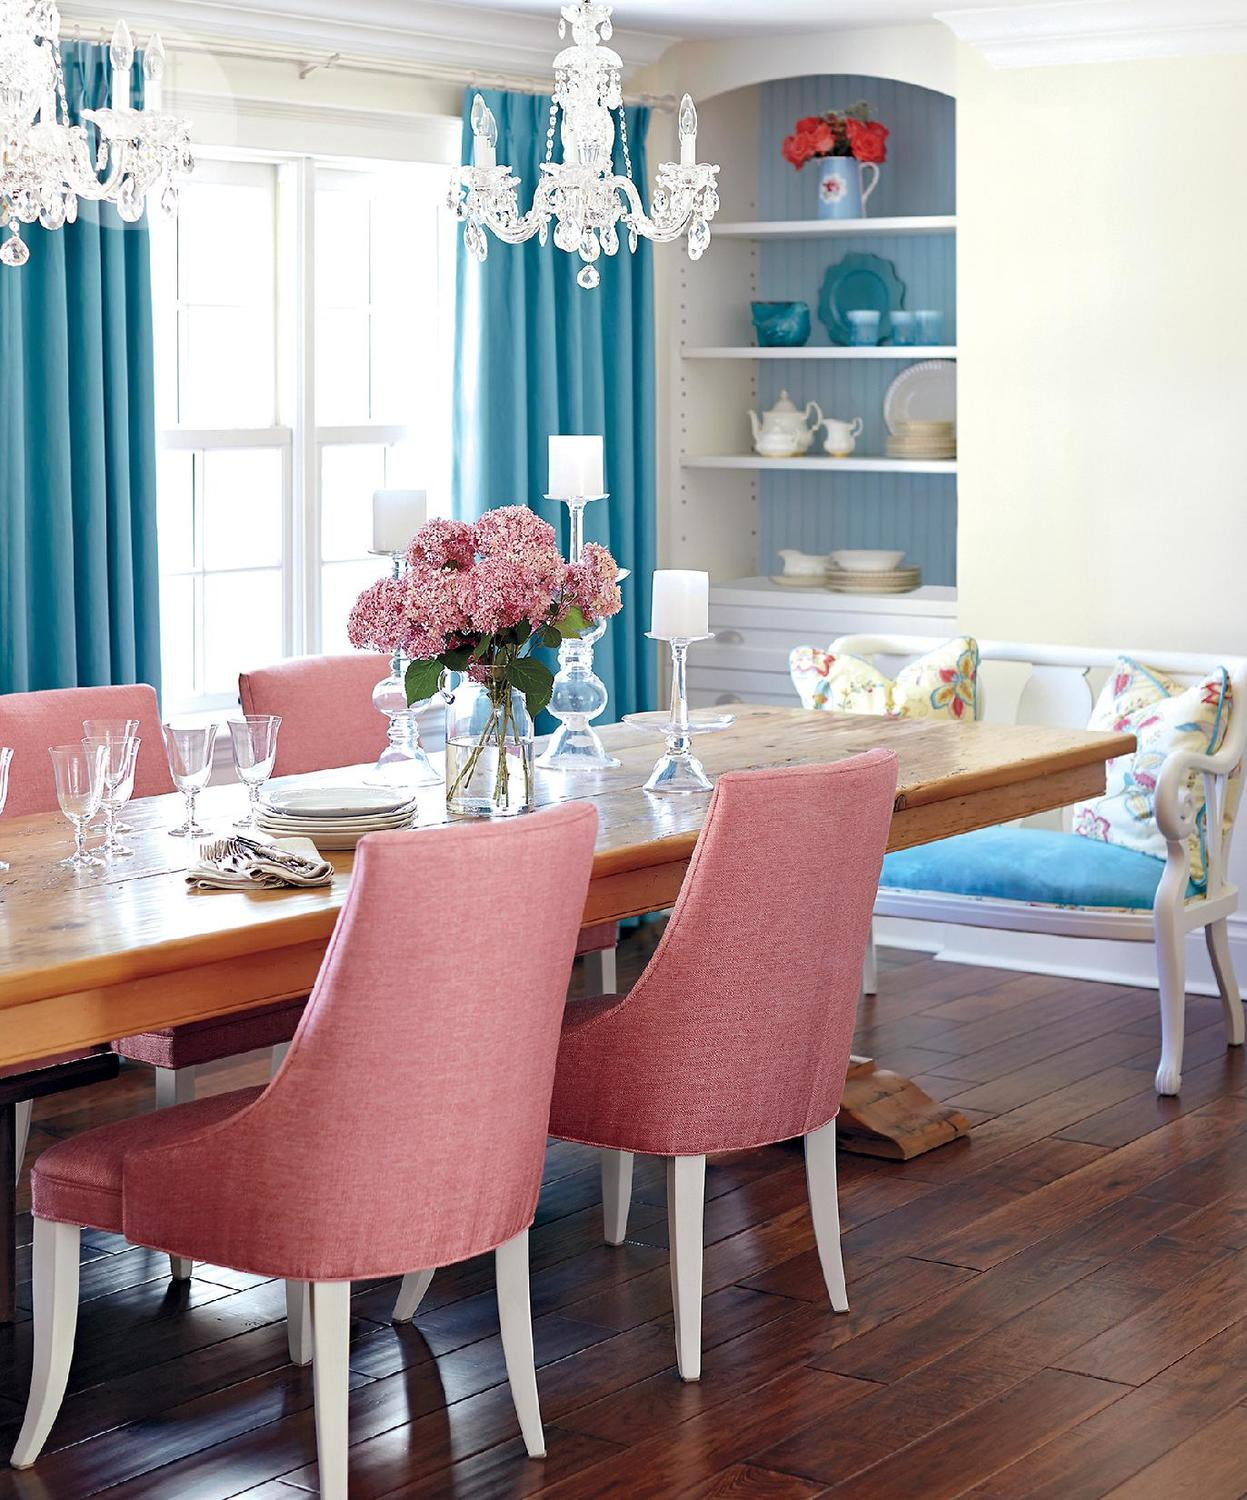 Stacy McLennan Designs A Charming Pink & Blue Home in Markham